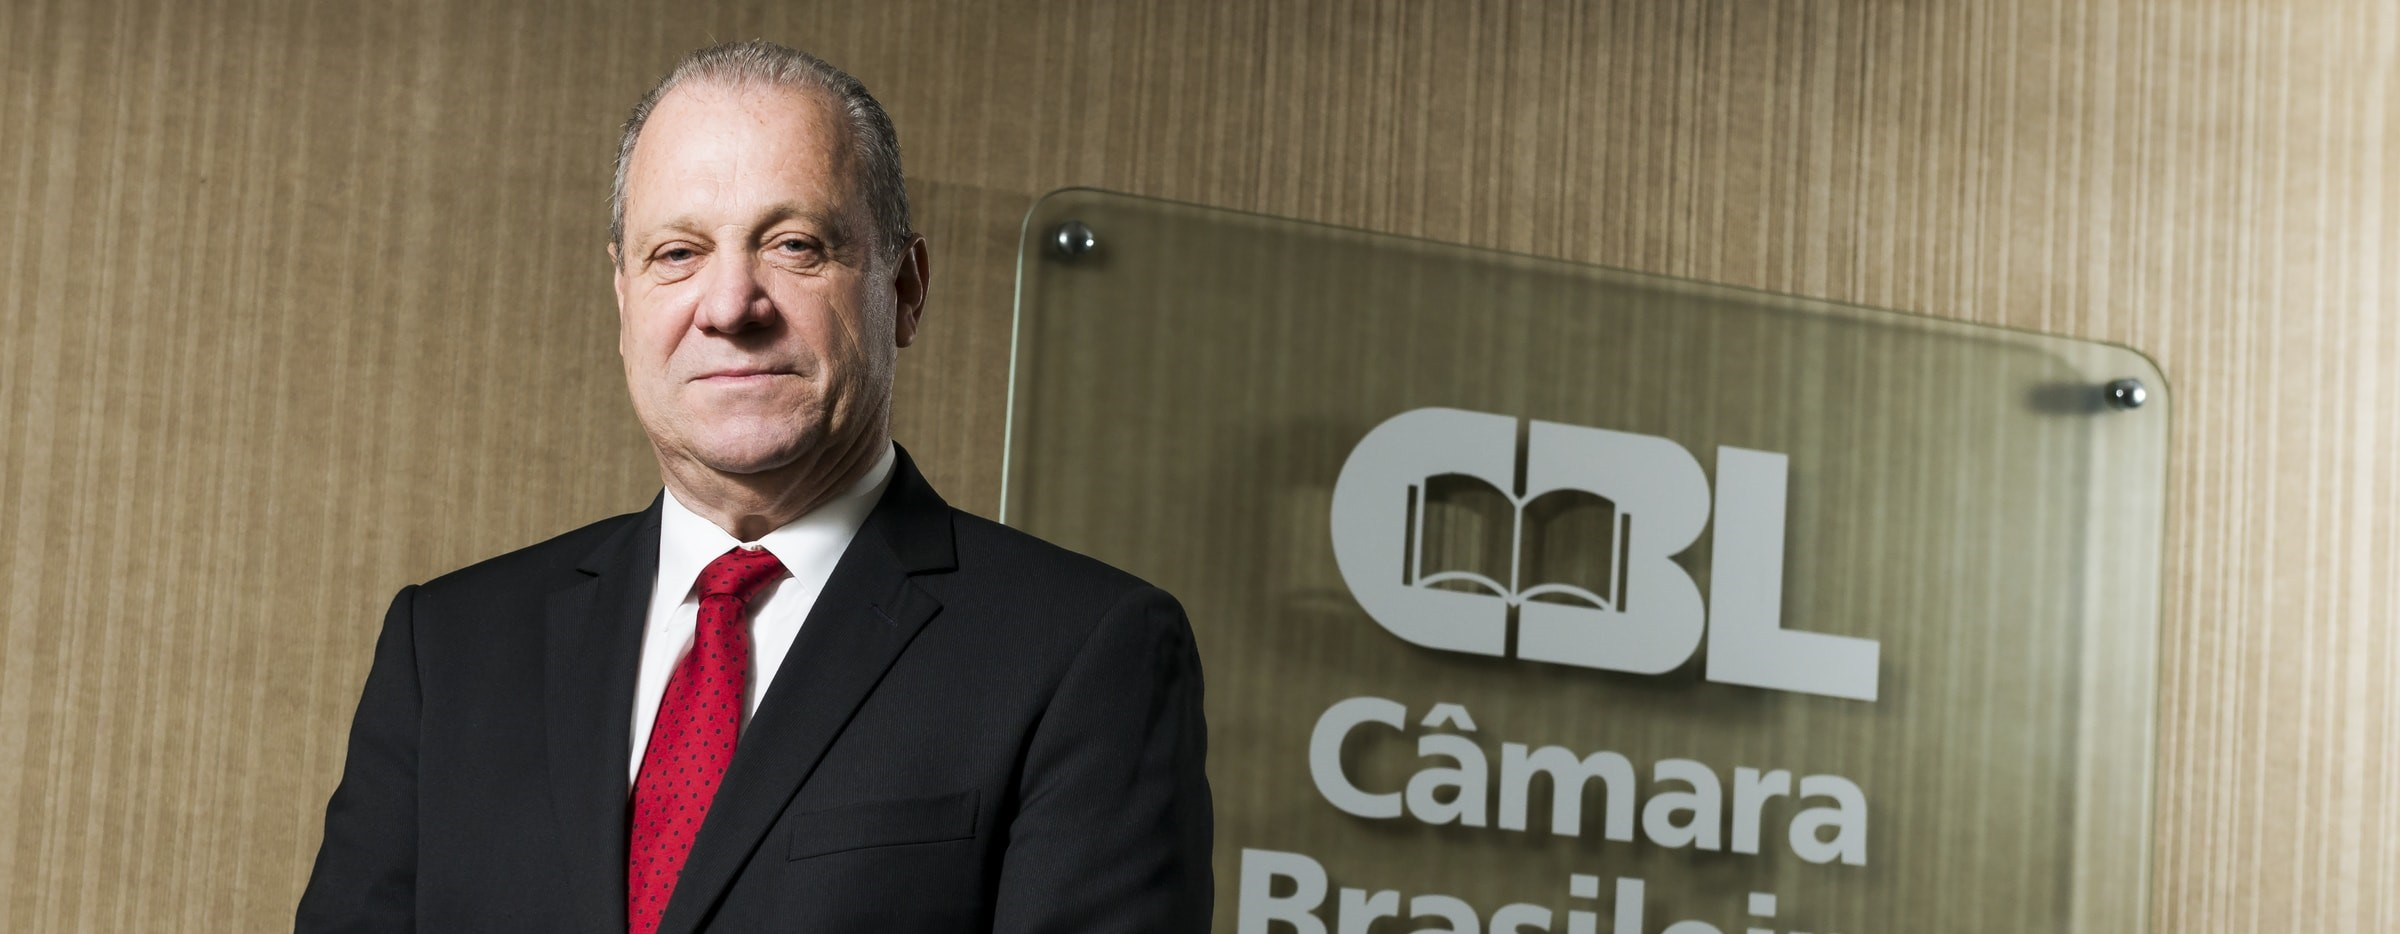 Jabuti Award: 60 years of incentive to reading and to the Brazilian literature